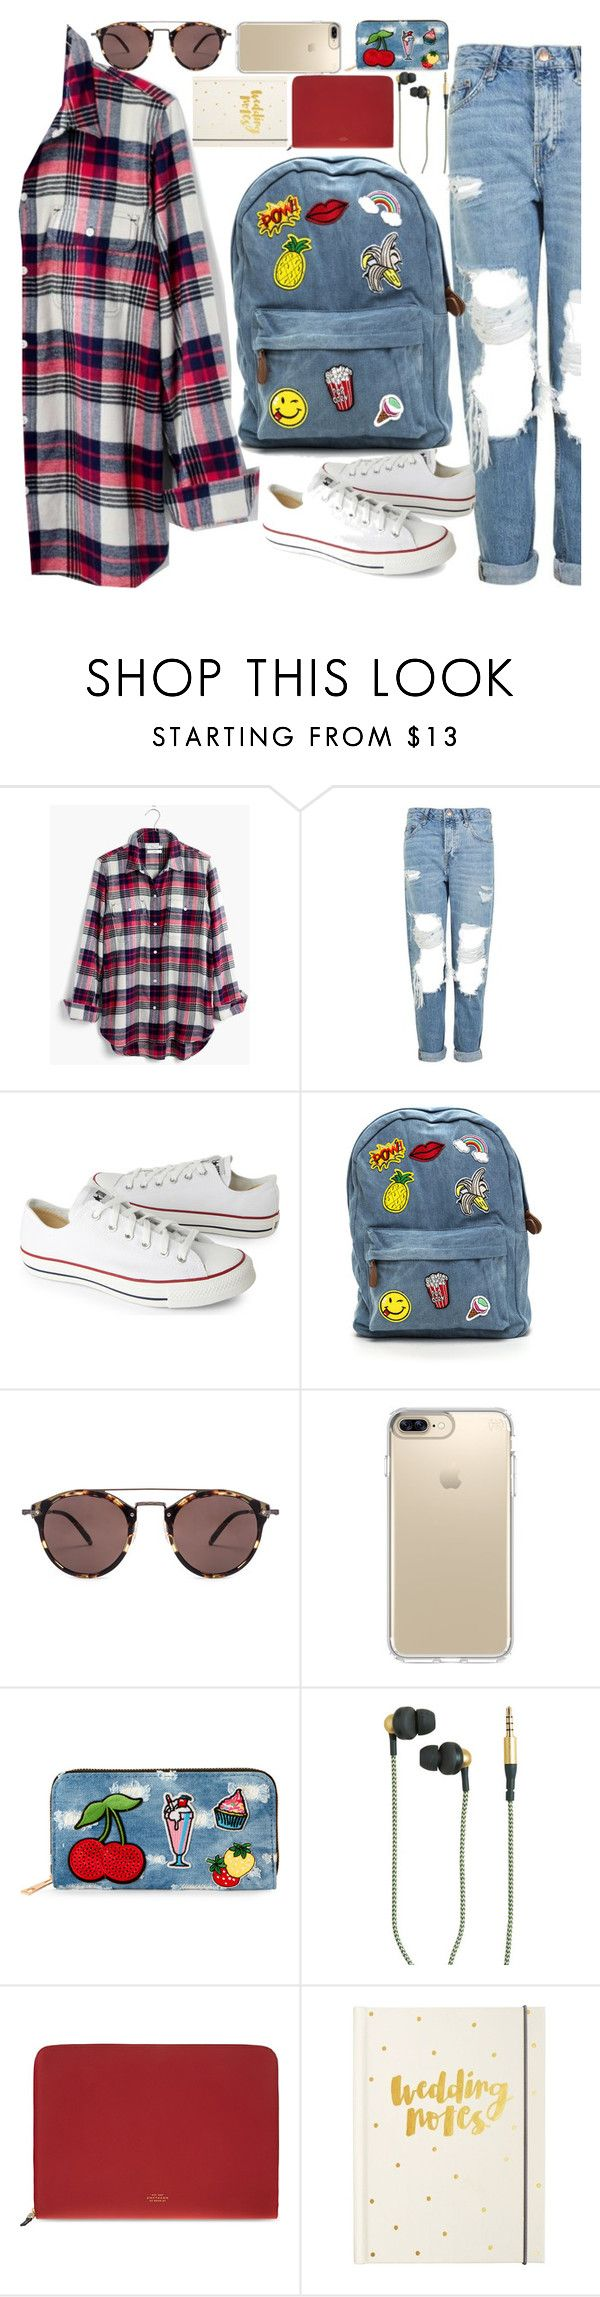 """HELLO."" by valemx ❤ liked on Polyvore featuring Madewell, Topshop, Converse, Oliver Peoples, Speck, Viola, Kreafunk, Smythson, kikki.K and contest"